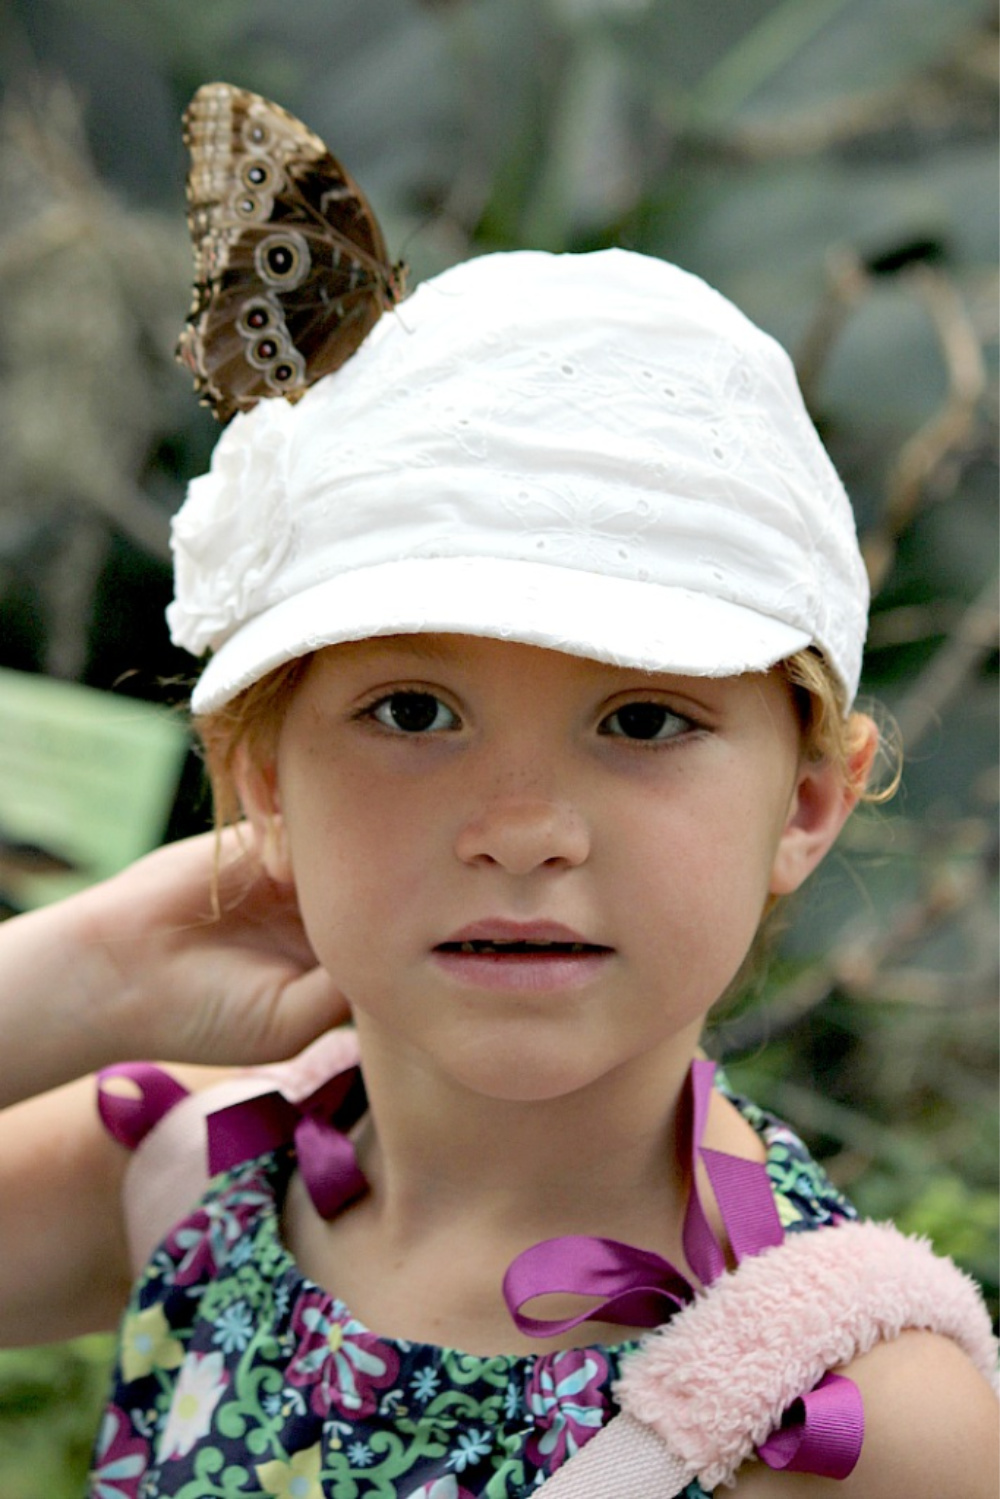 a girl with a butterfly on her hat